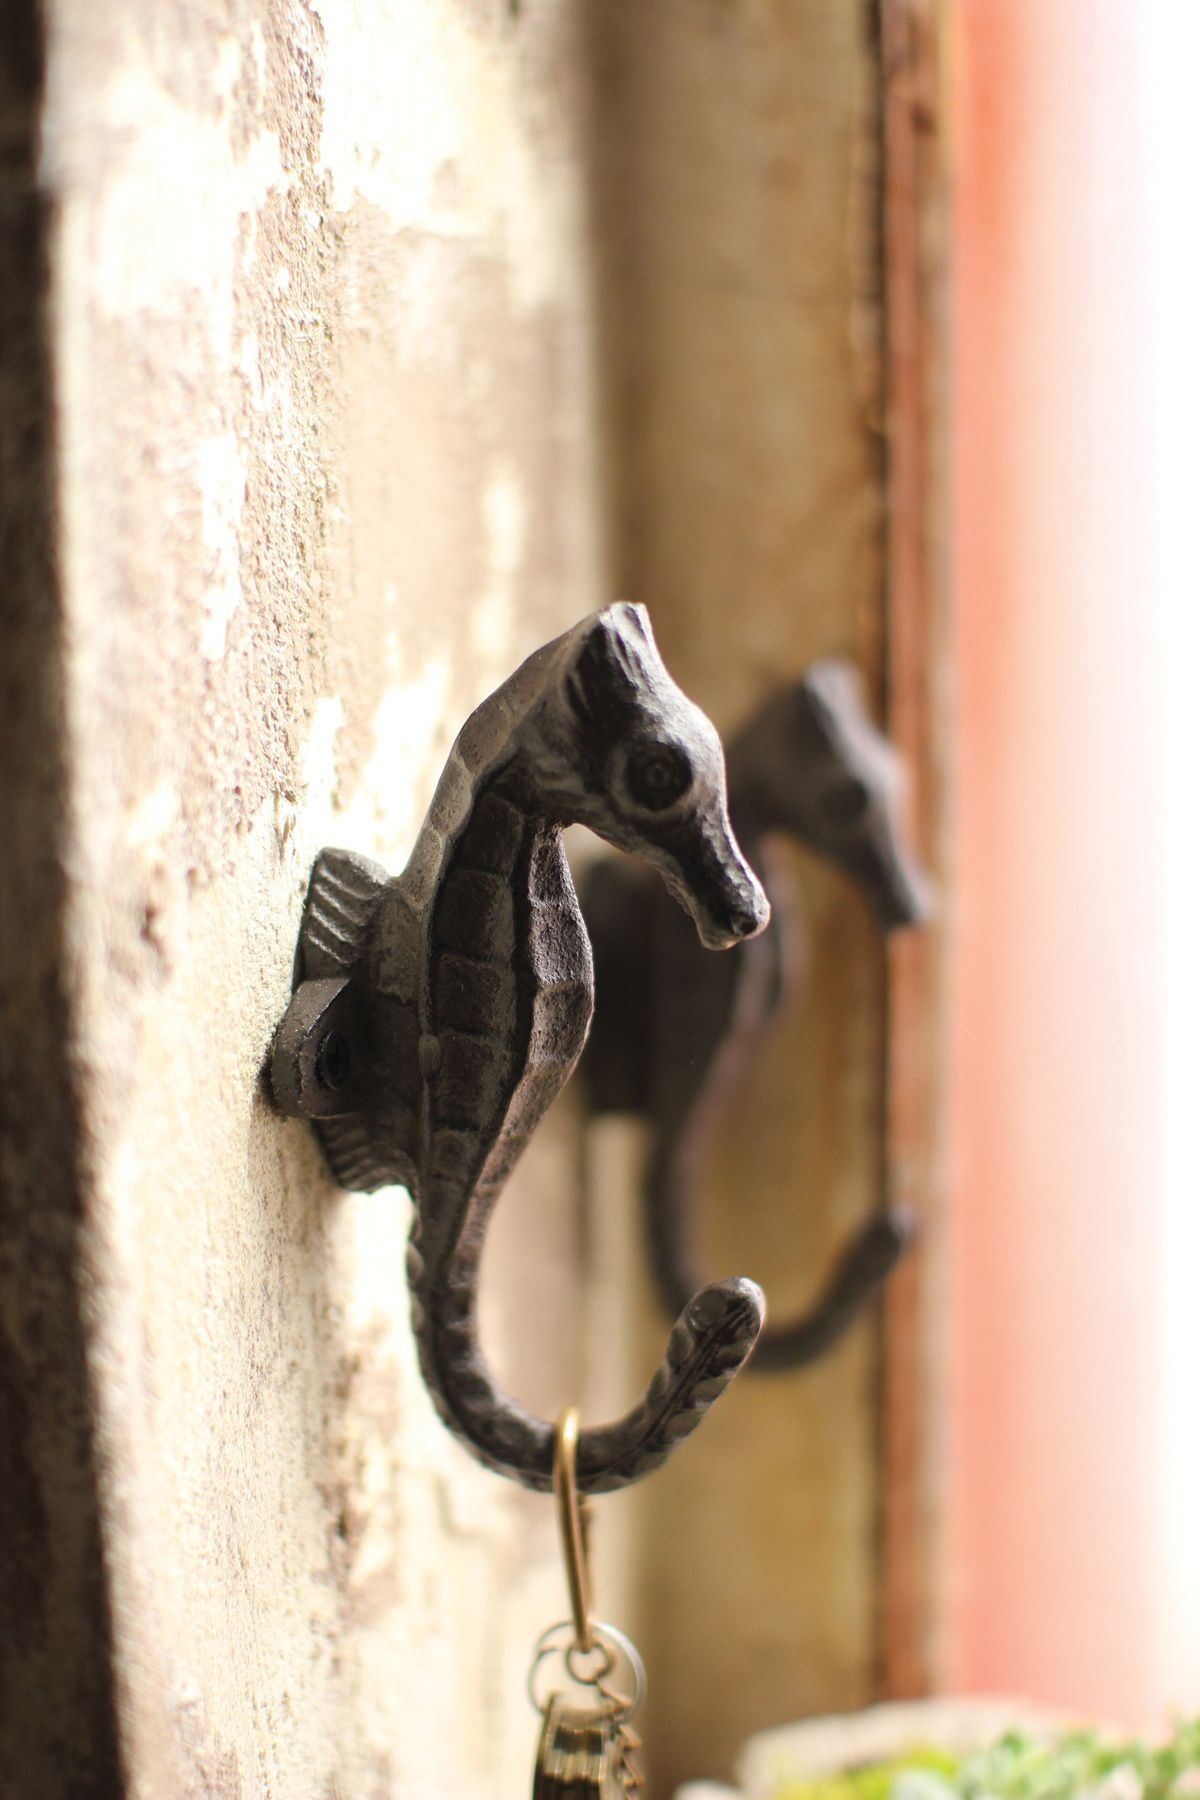 Seahorse Wall Hook Keep The Bath Kitchen Or Entry Tidy